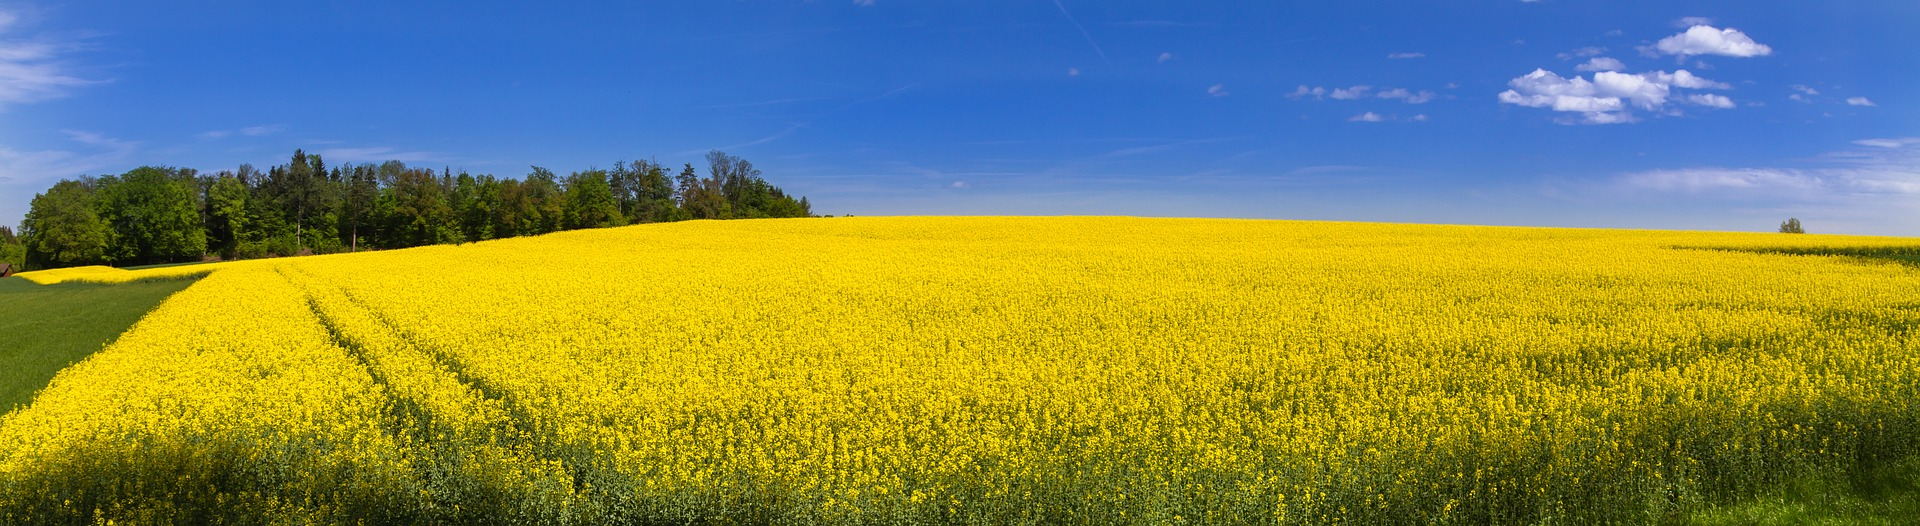 oilseed-rape-3363808_1920